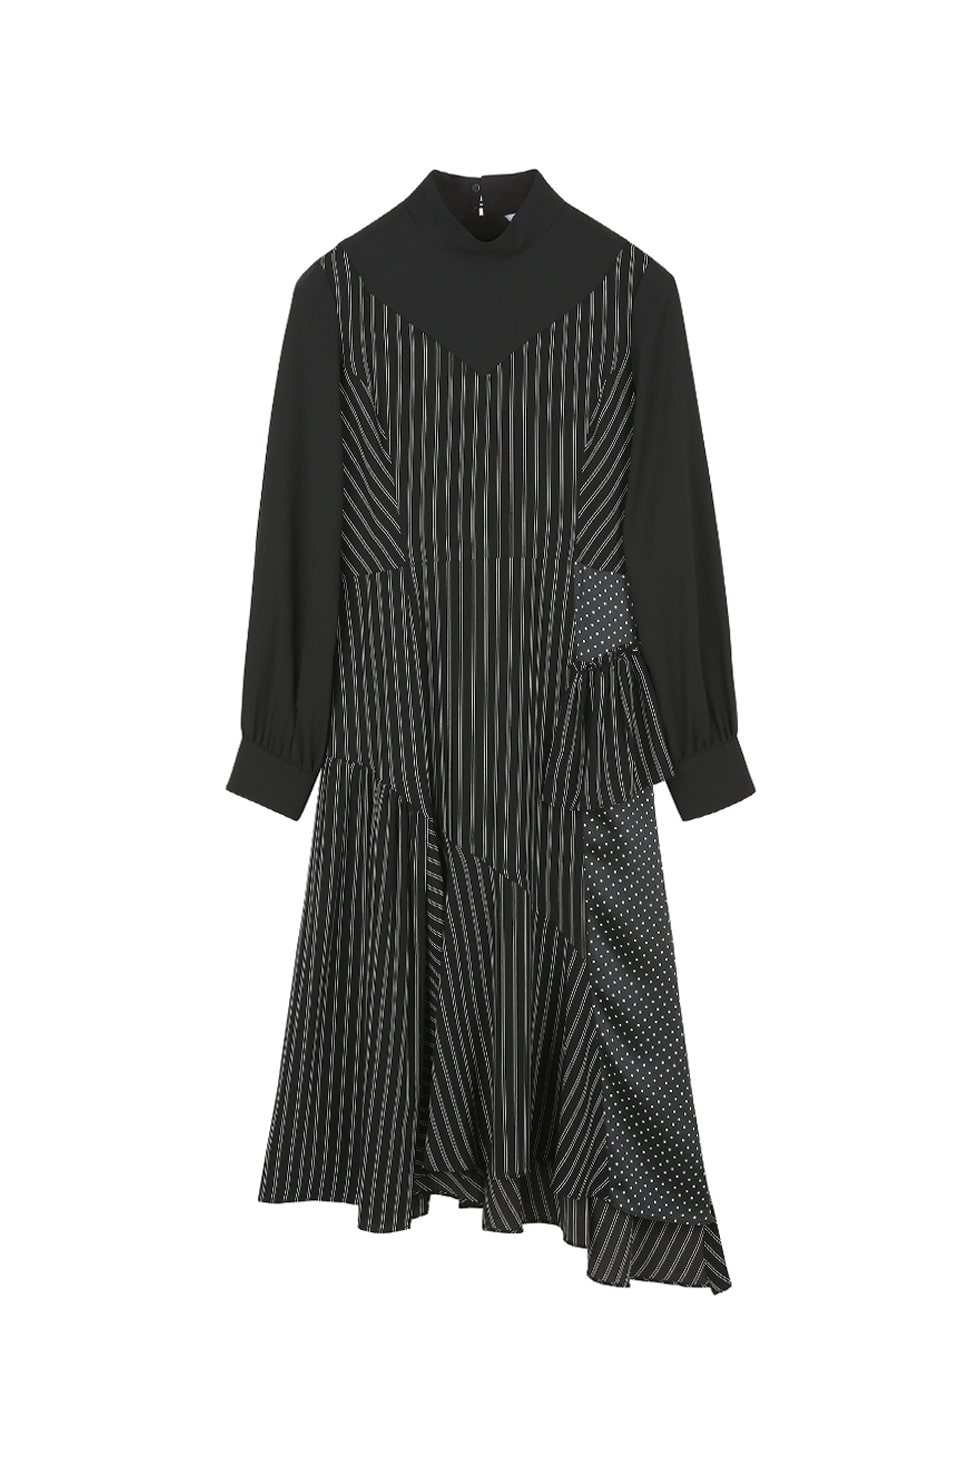 DOUBLE LAYERED STRIPE DRESS- BLACK